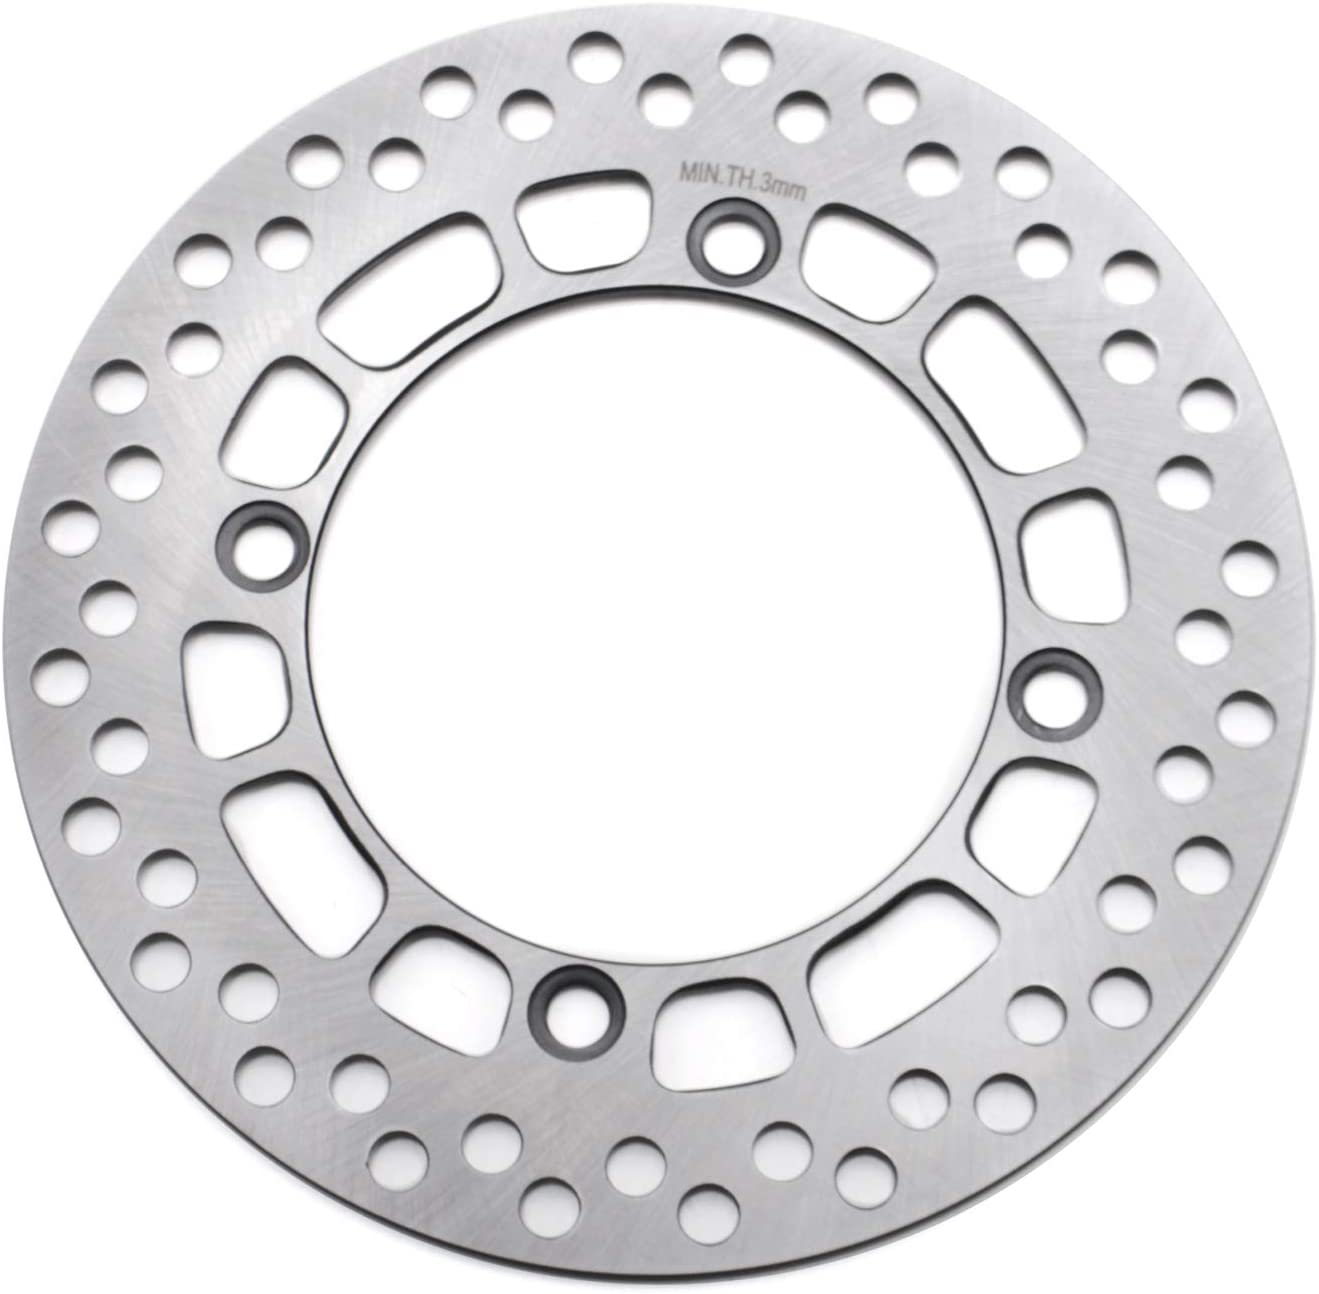 ANUESN Motorcycle Front Brake Disc Fit SUZUKI DR200 DF200 DR125 TS125 230MM